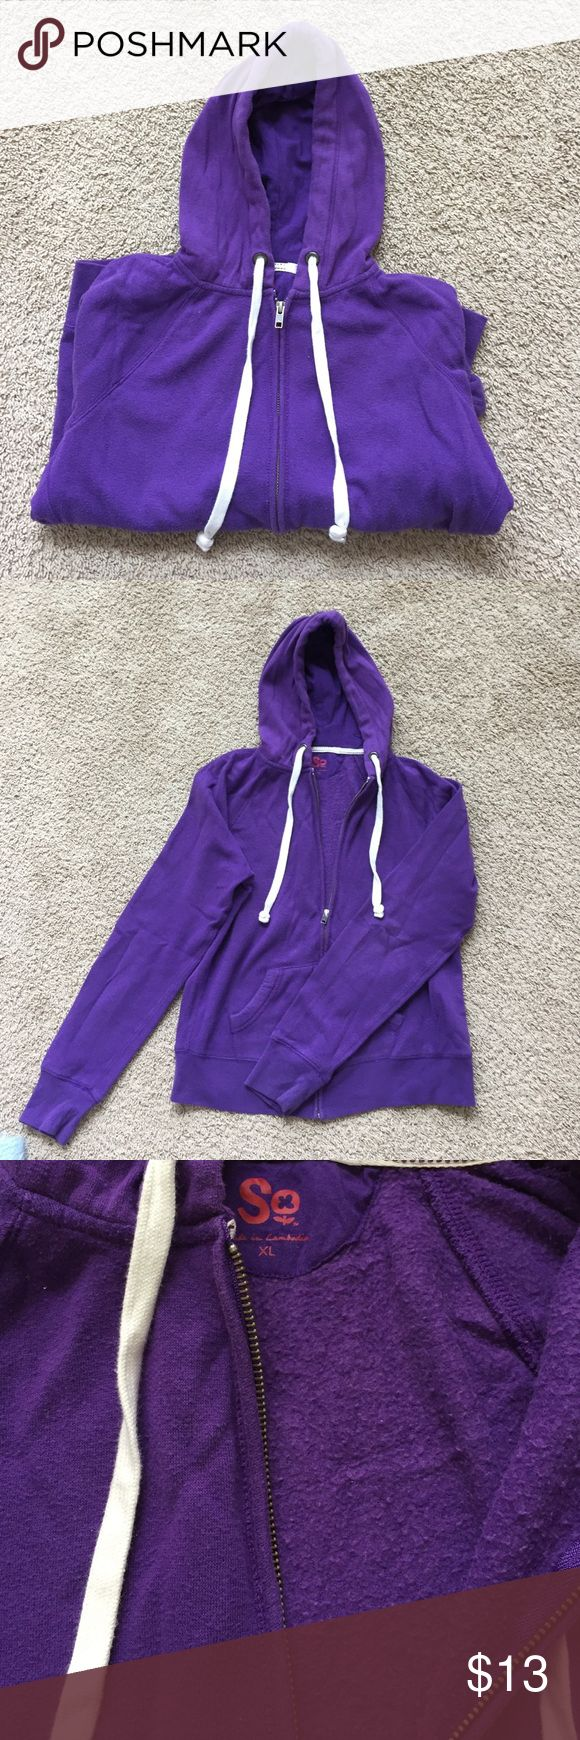 Purple Zip-Up Sweater Purple zip-up sweater with pockets and hood. Good condition. Size x-large, but can fit different sizes. Sweaters